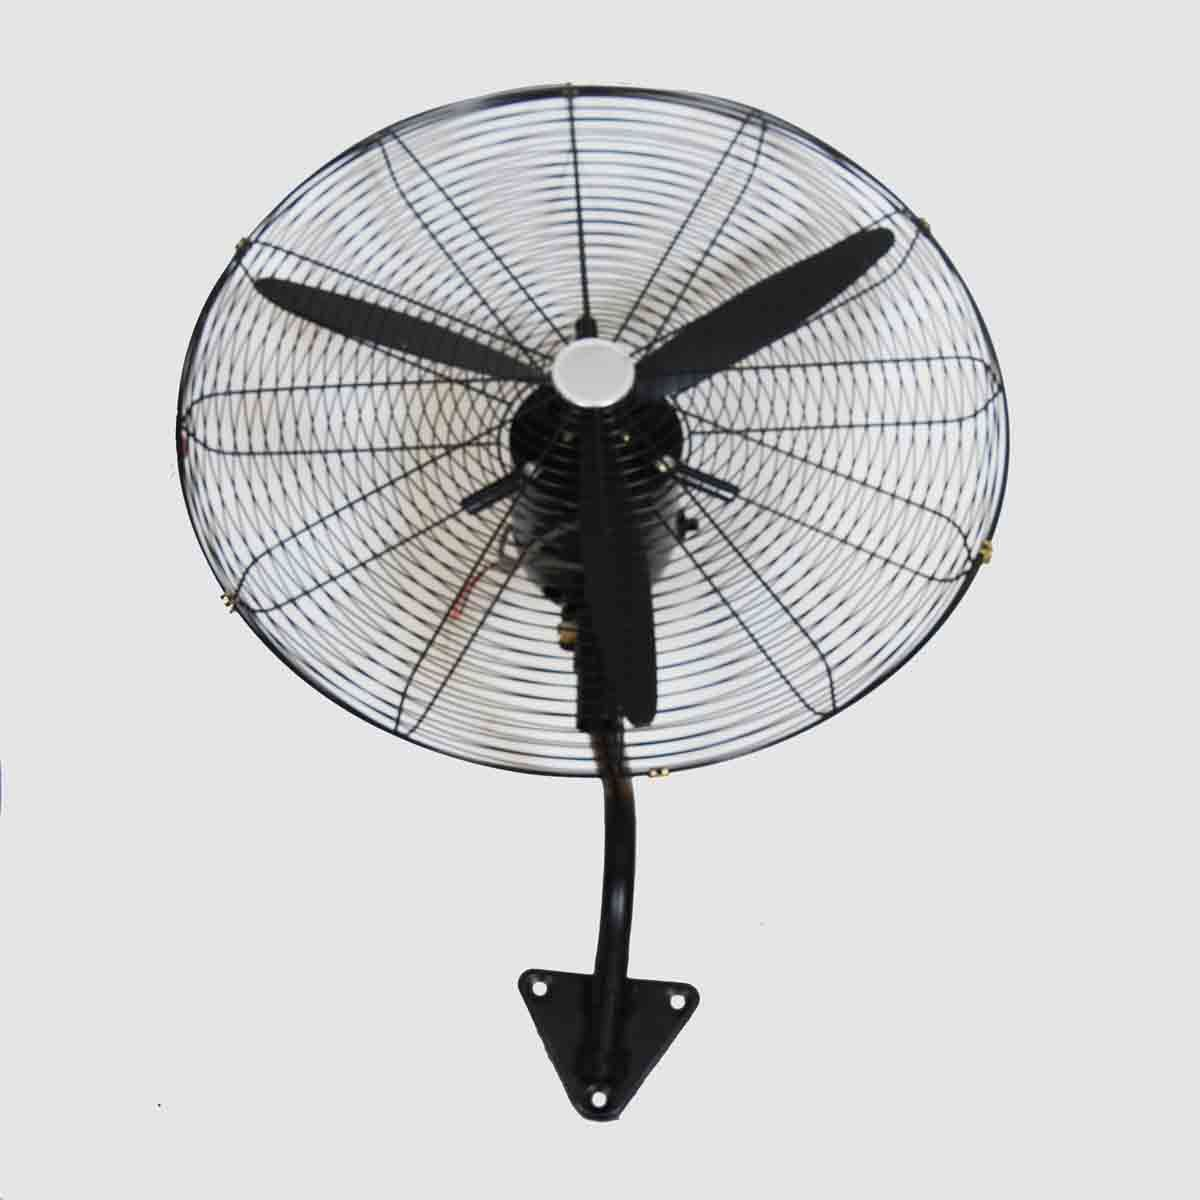 Electric Generator Fan Ask Answer Wiring Diagram Simpleelectricgeneratordiagram Pin Simple Electricity Why Don T Wind Generators Have Guards To Keep Wildlife Out Of Those Big Blades Democratic